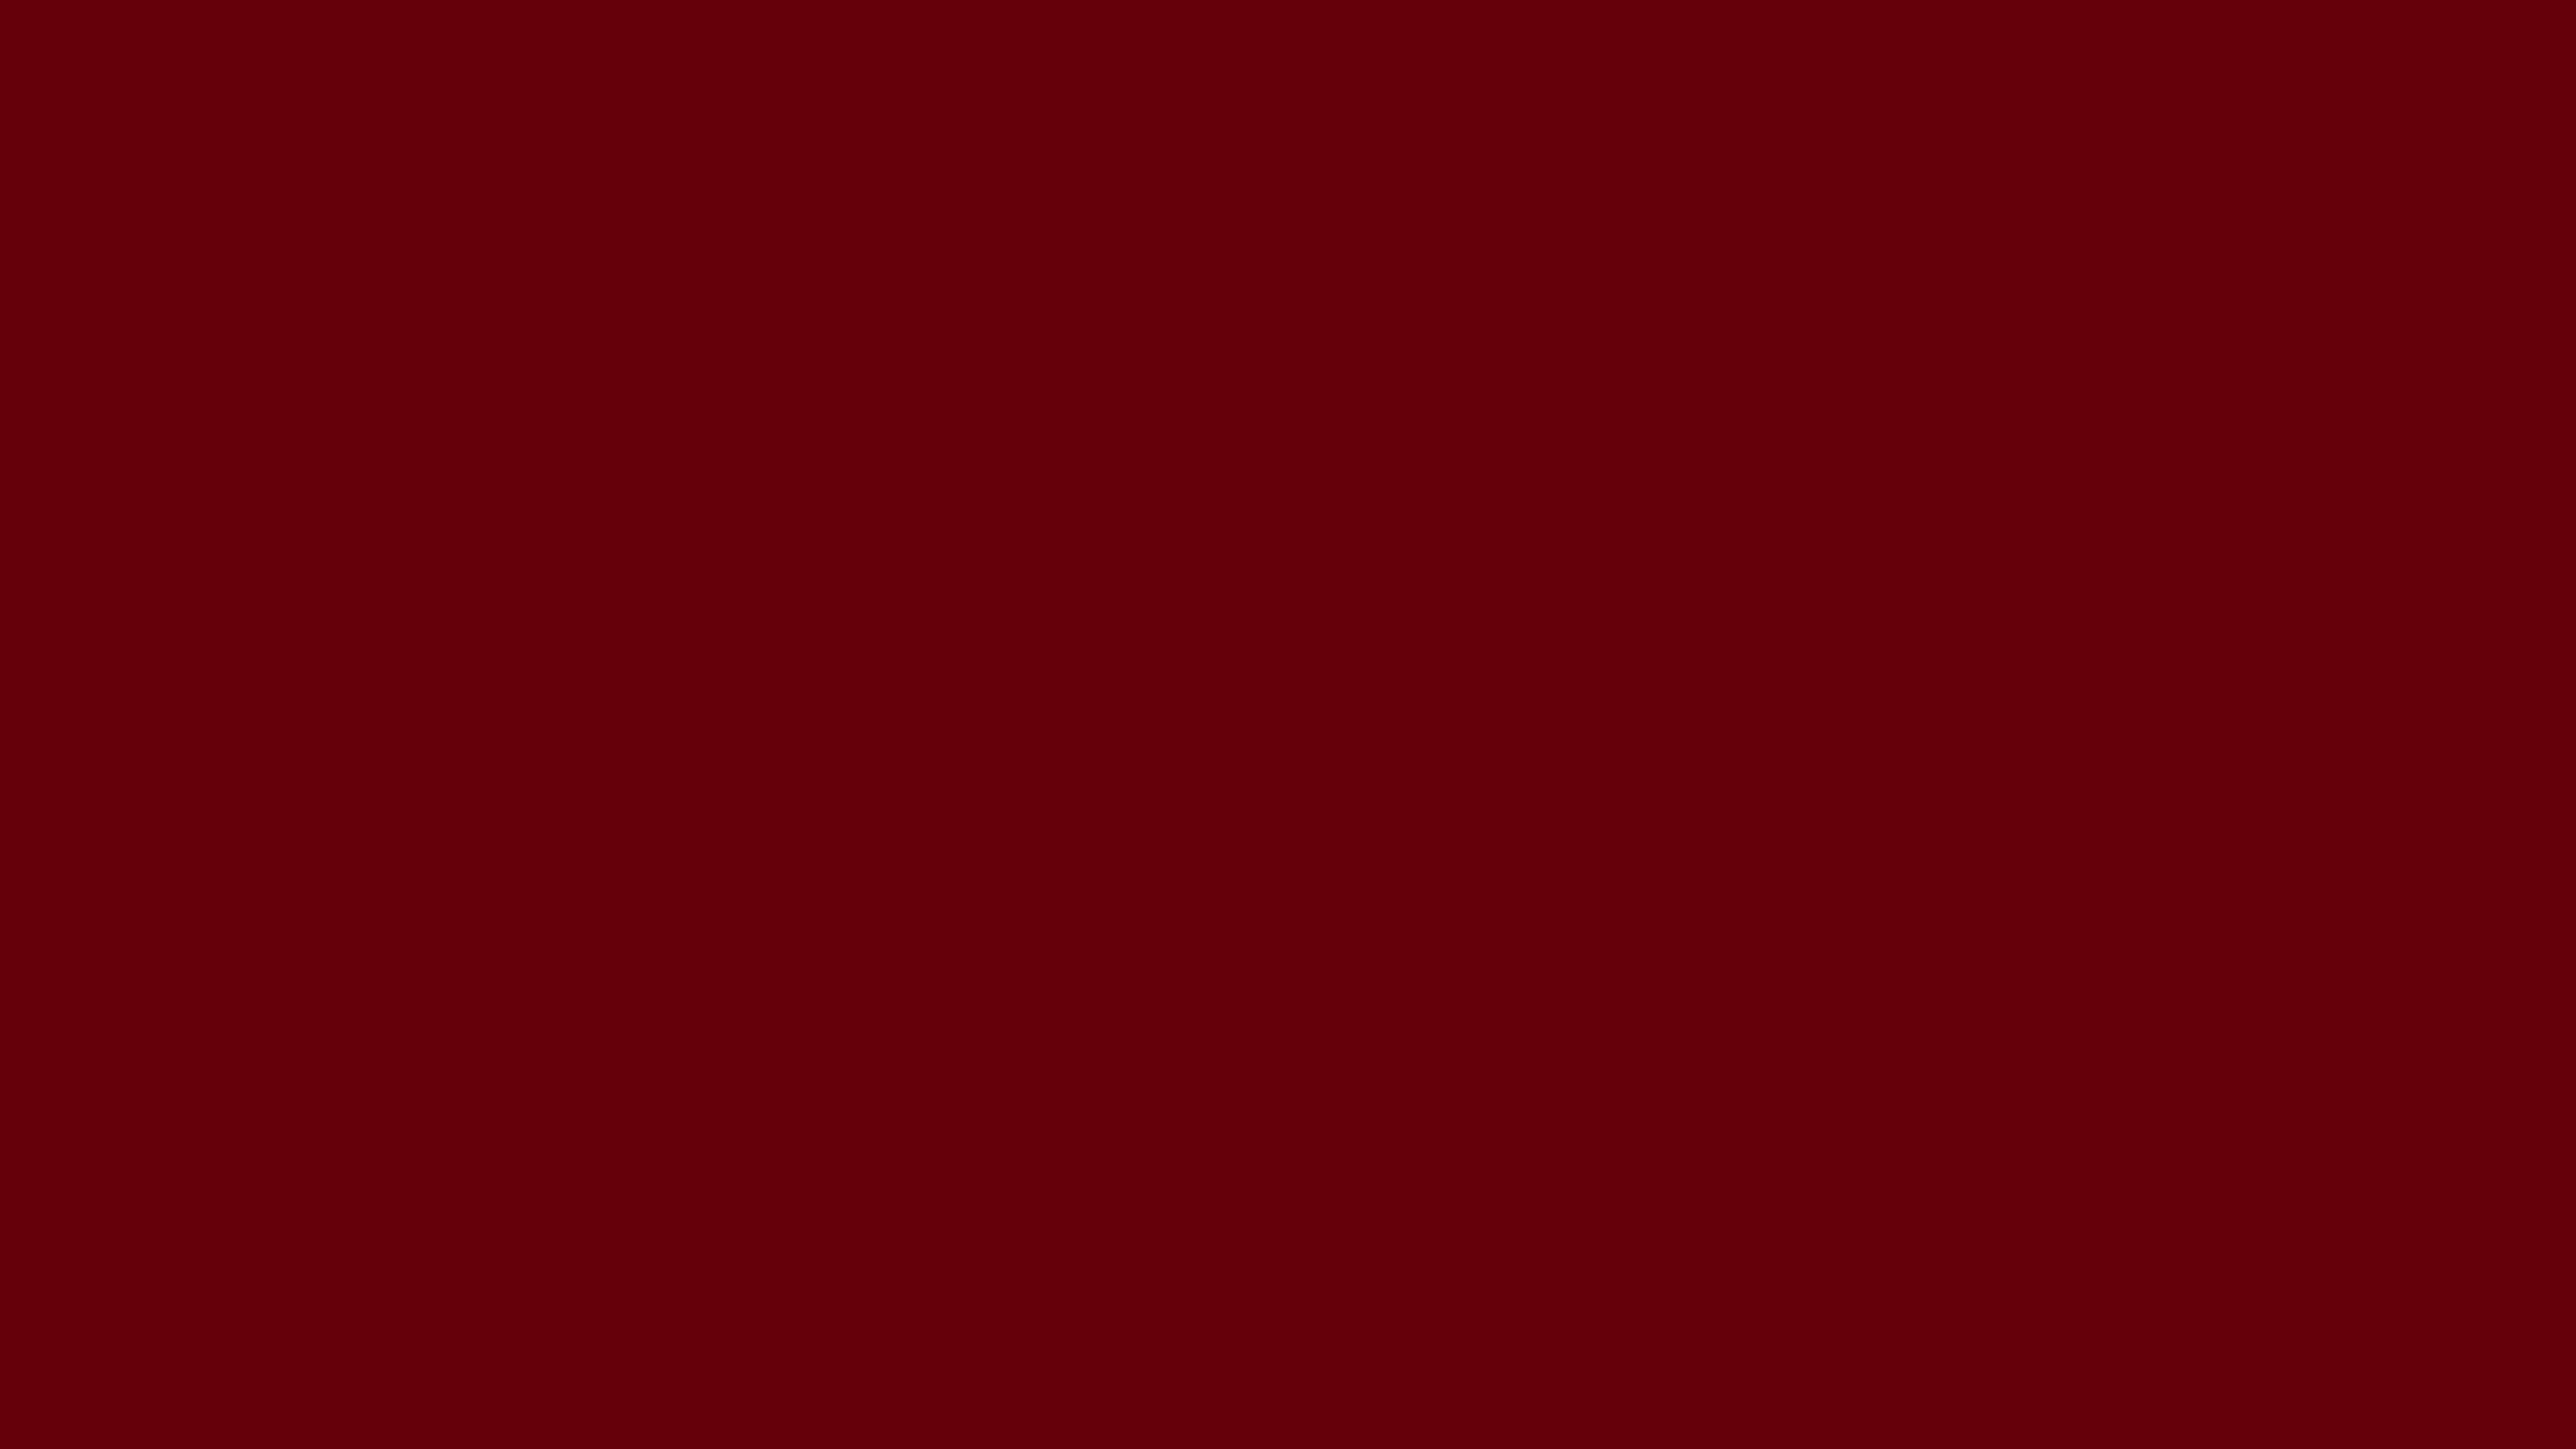 3840x2160 Rosewood Solid Color Background